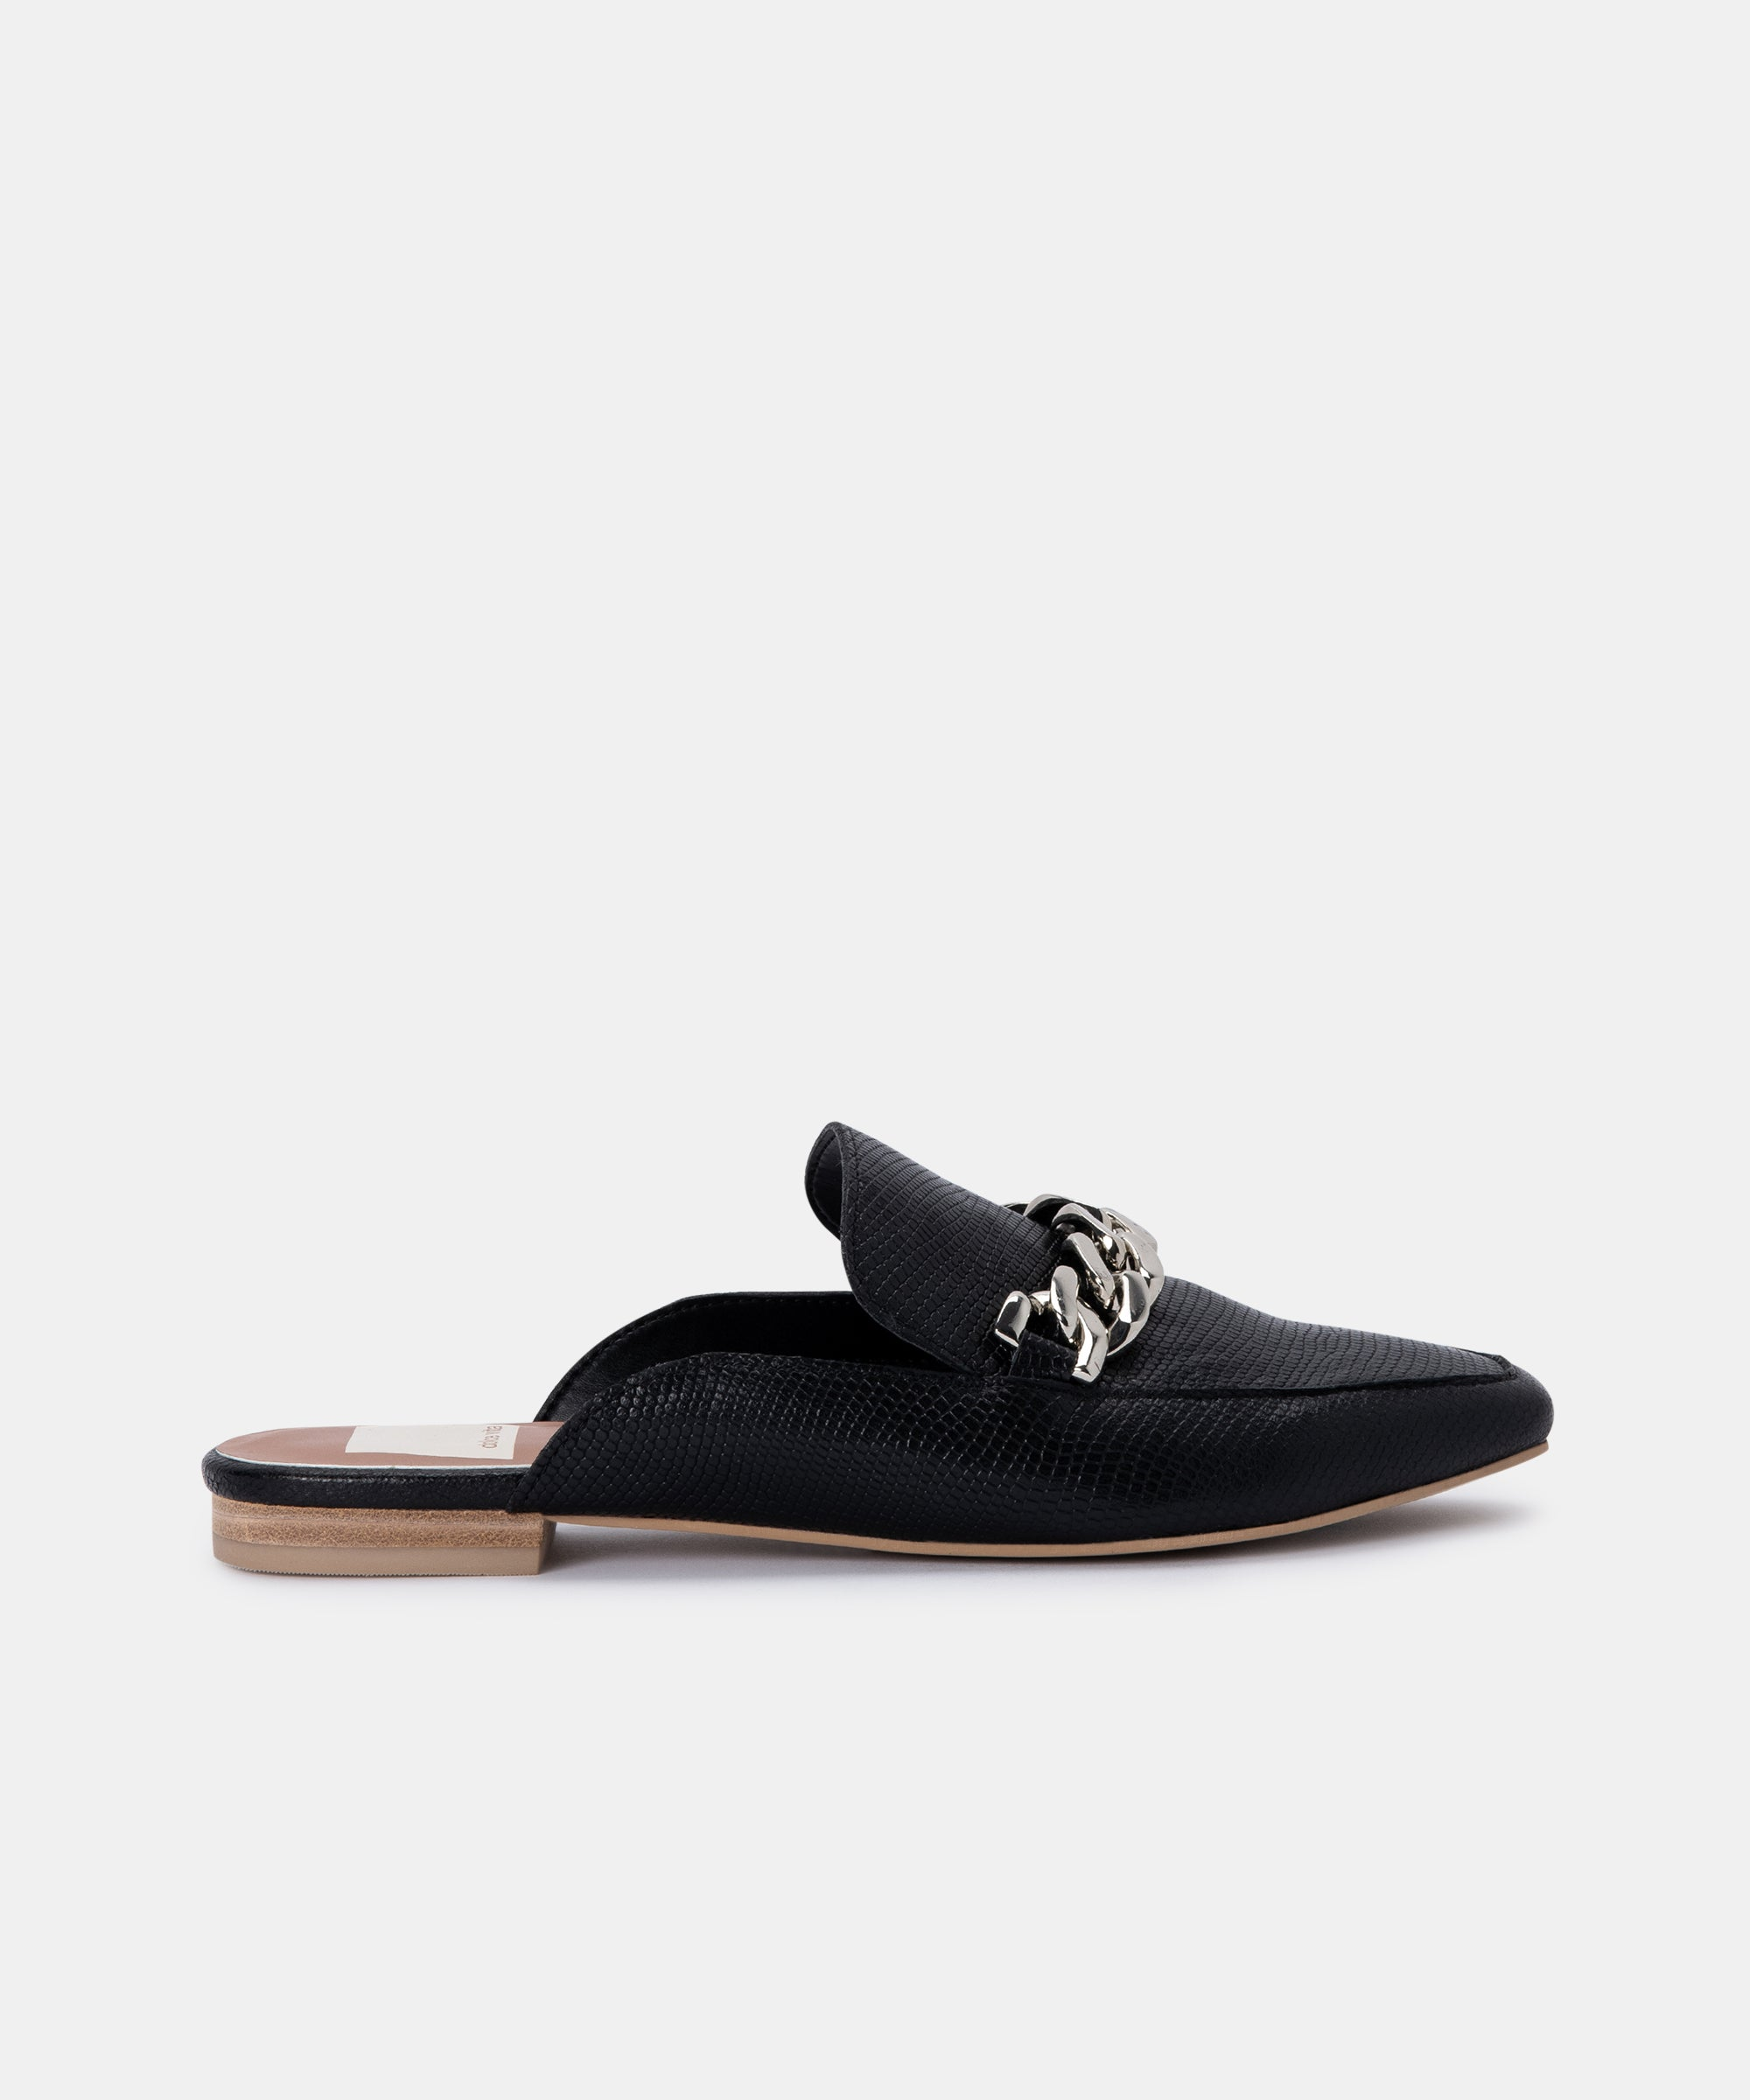 HAYAT FLATS IN BLACK EMBOSSED LIZARD